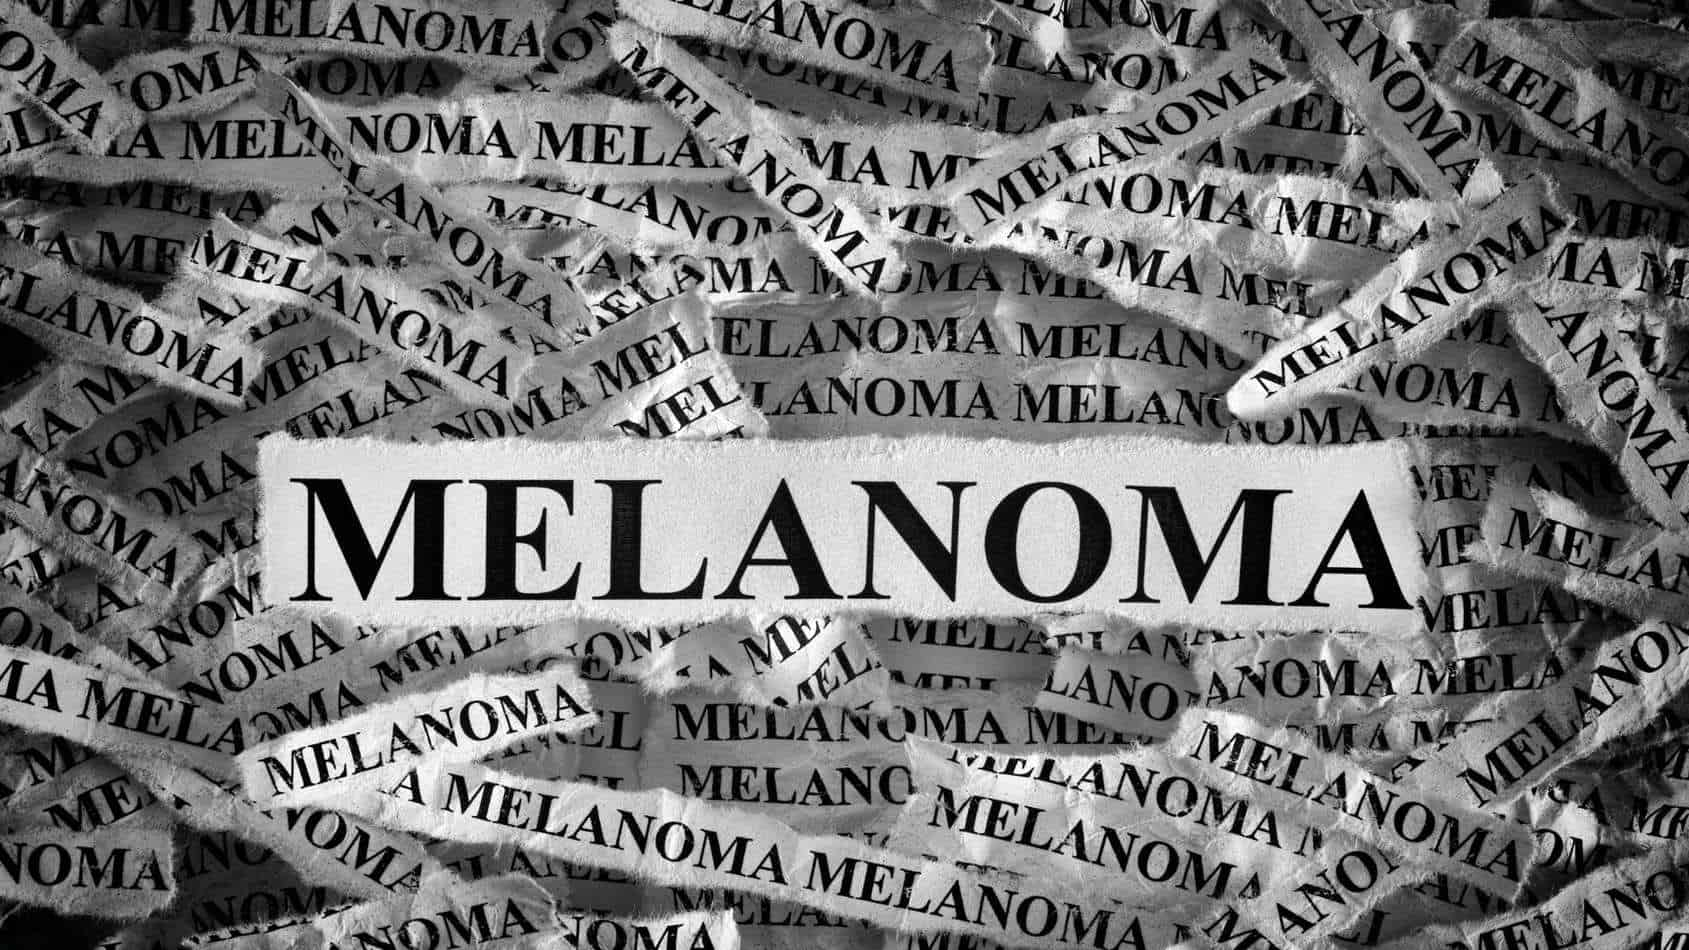 Melanoma and the dangers of not checking your skin